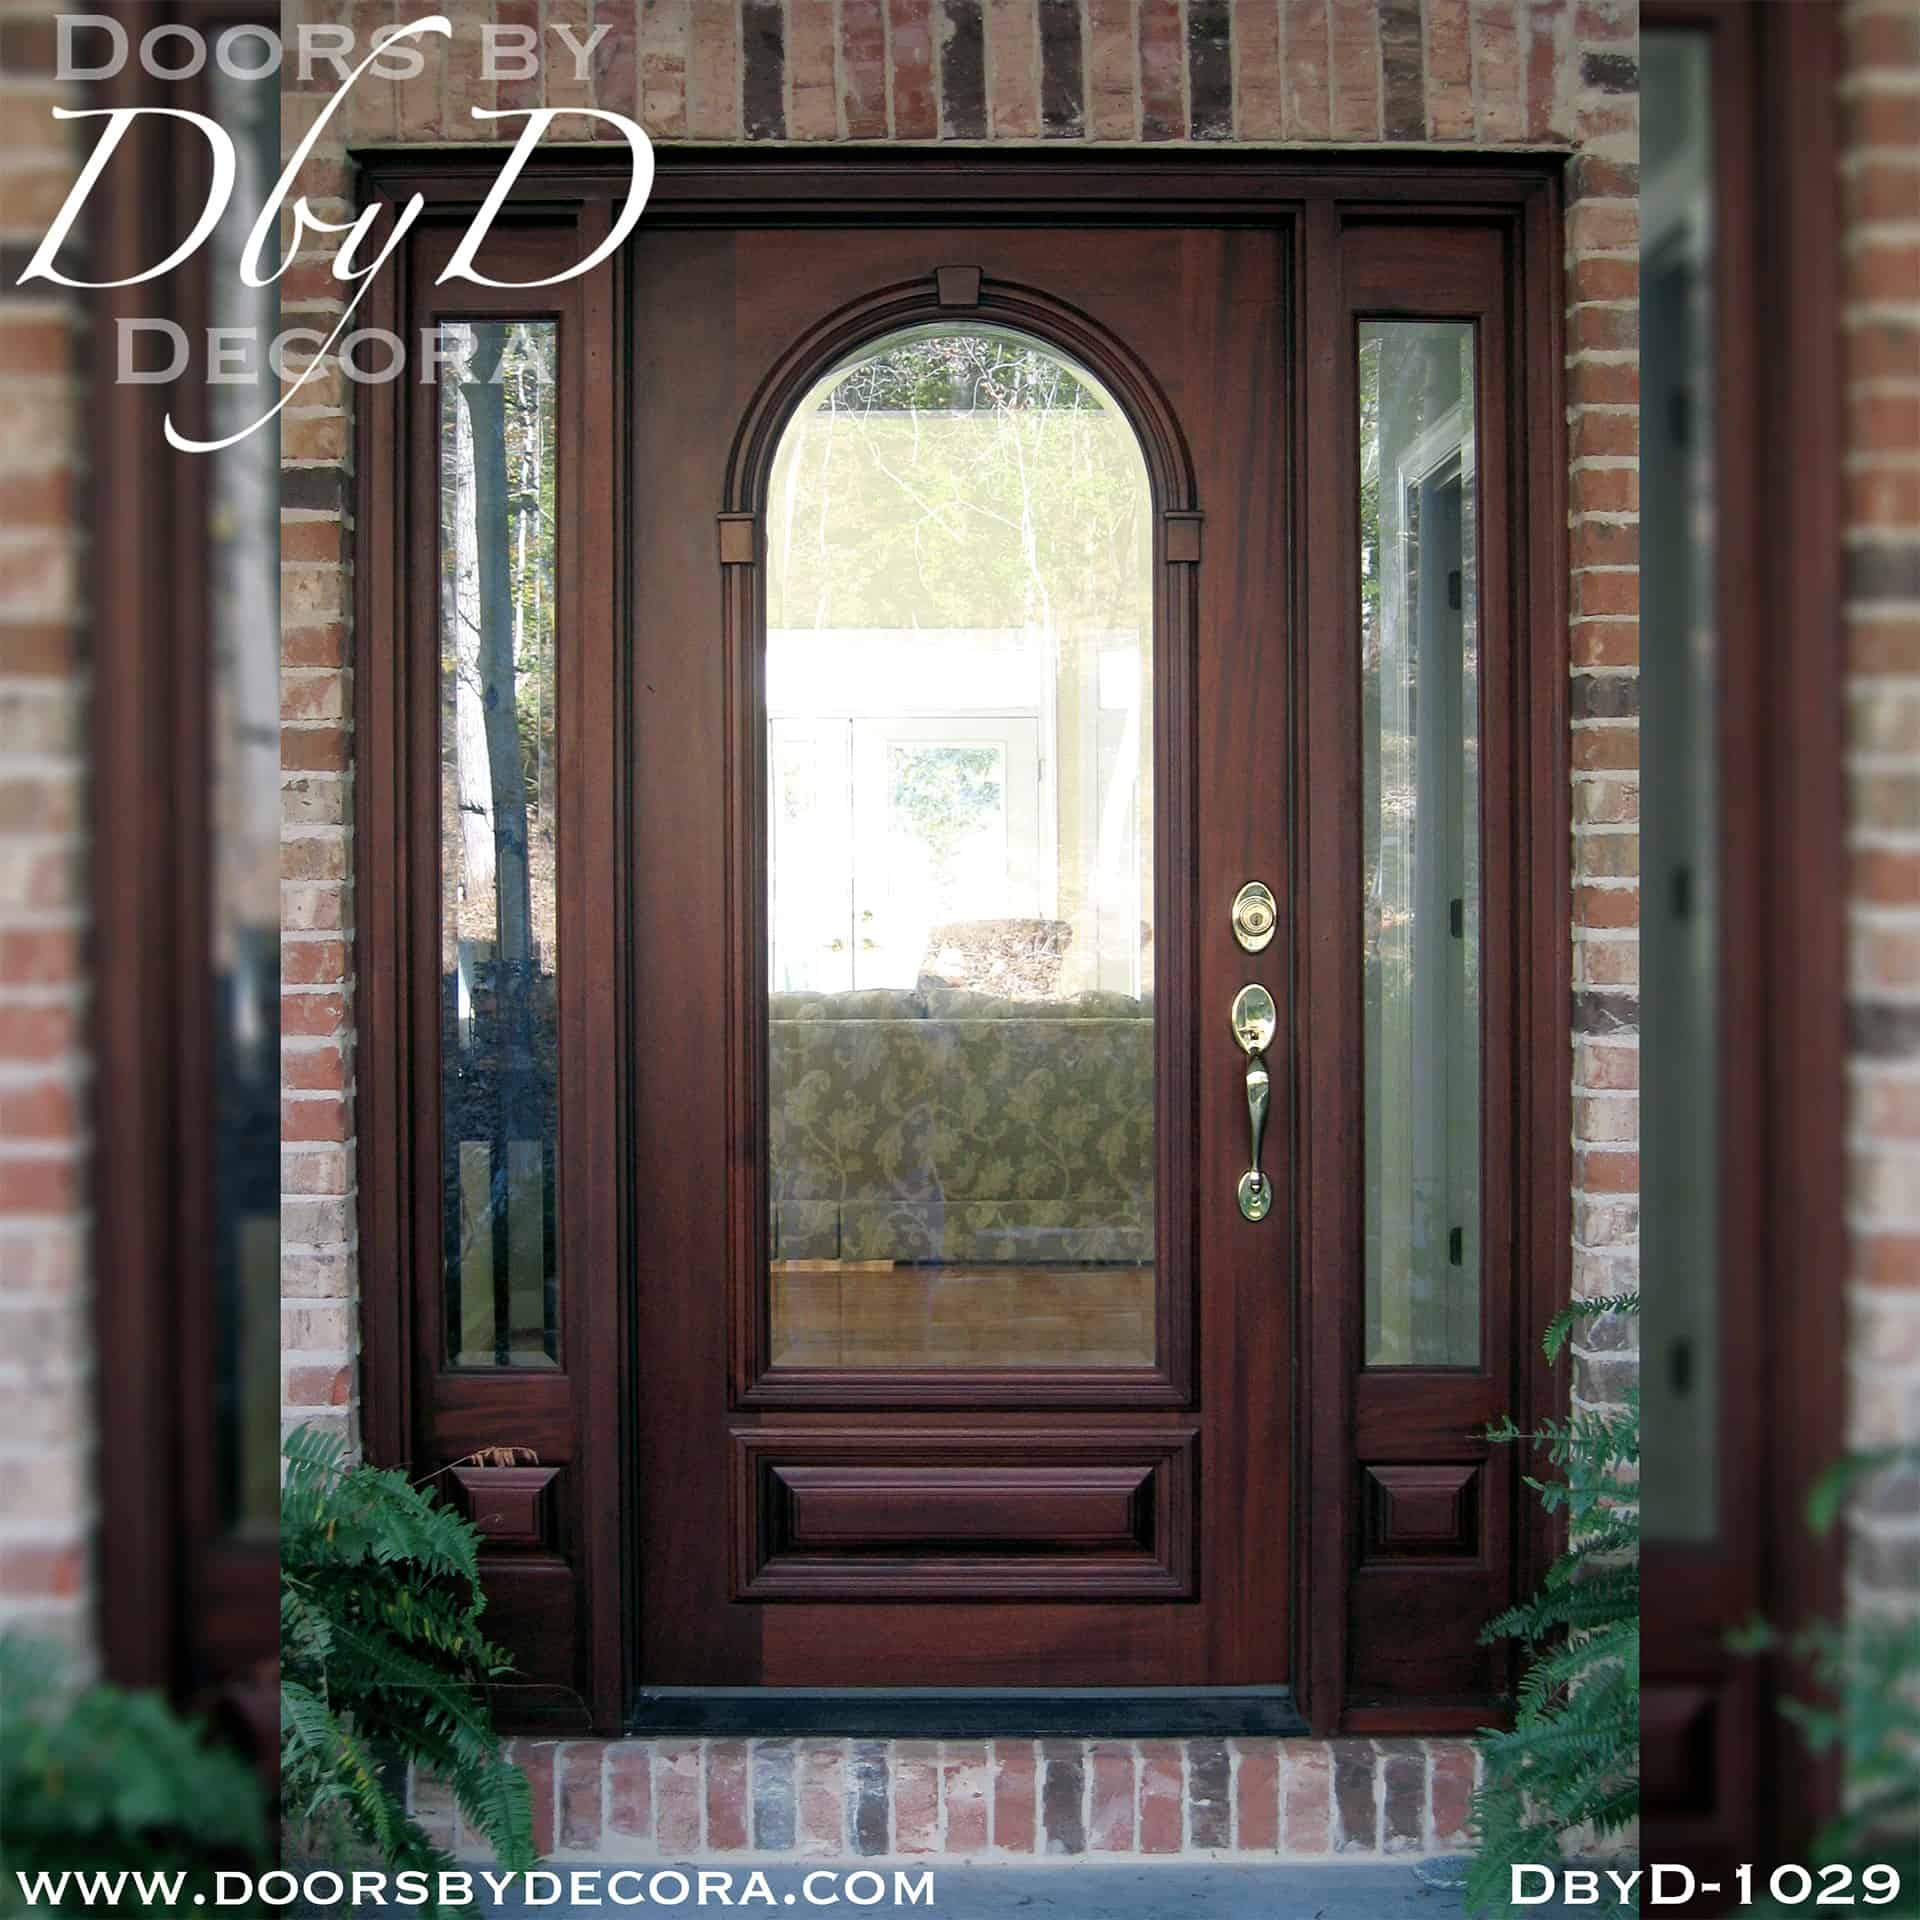 Custom Estate Beveled Glass Front Entry Solid Wood Doors By Decora